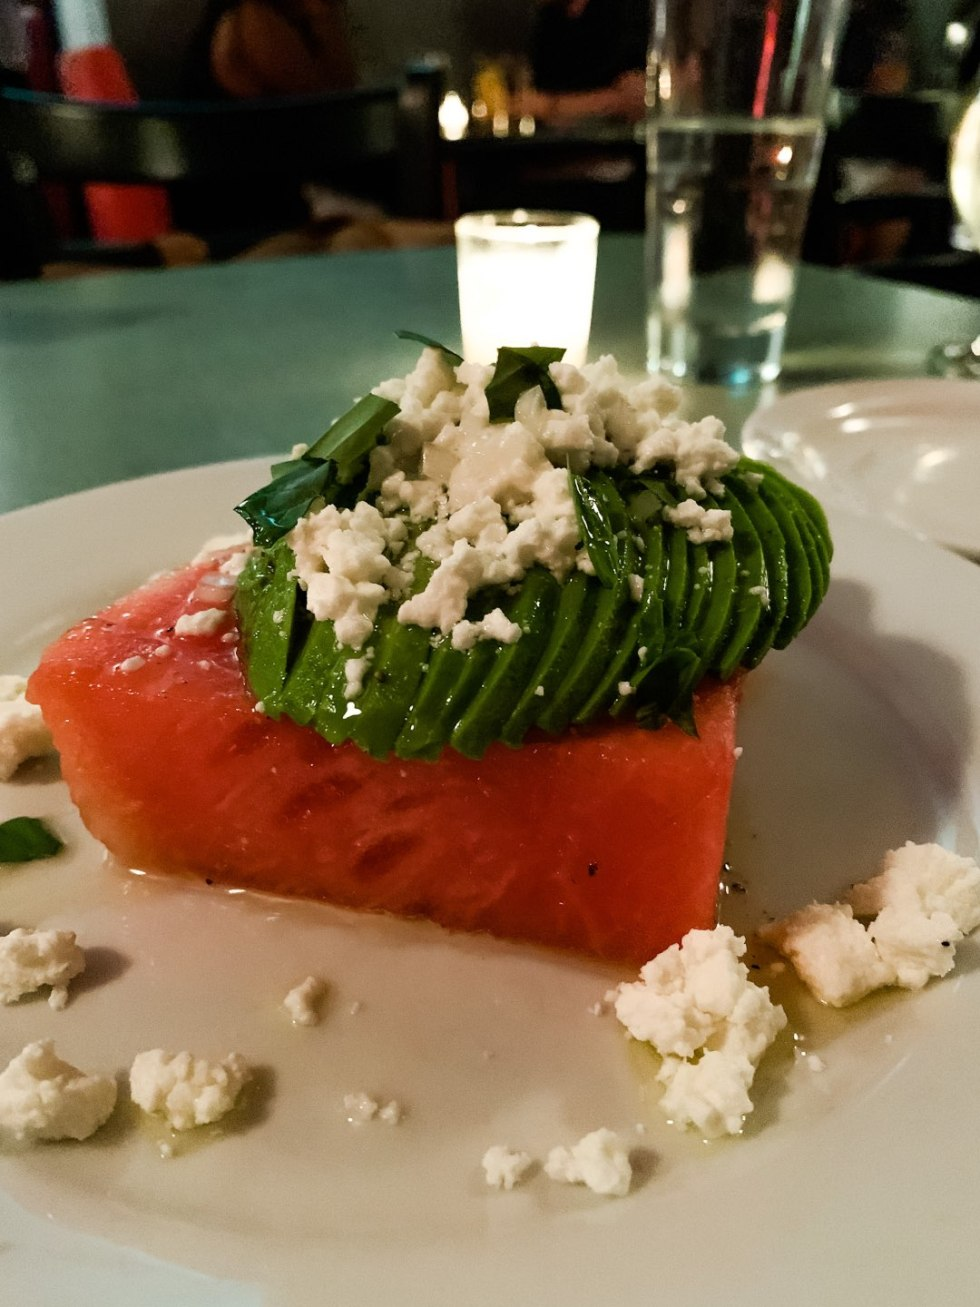 The 20 North Carolina Restaurants I Can't Wait to Visit after Quarantine - I'm Fixin' To - @mbg0112 | Best North Carolina Restaurants by popular N.C. blog, I'm Fixin' To: image of a watermelon salad at Poole's Diner.